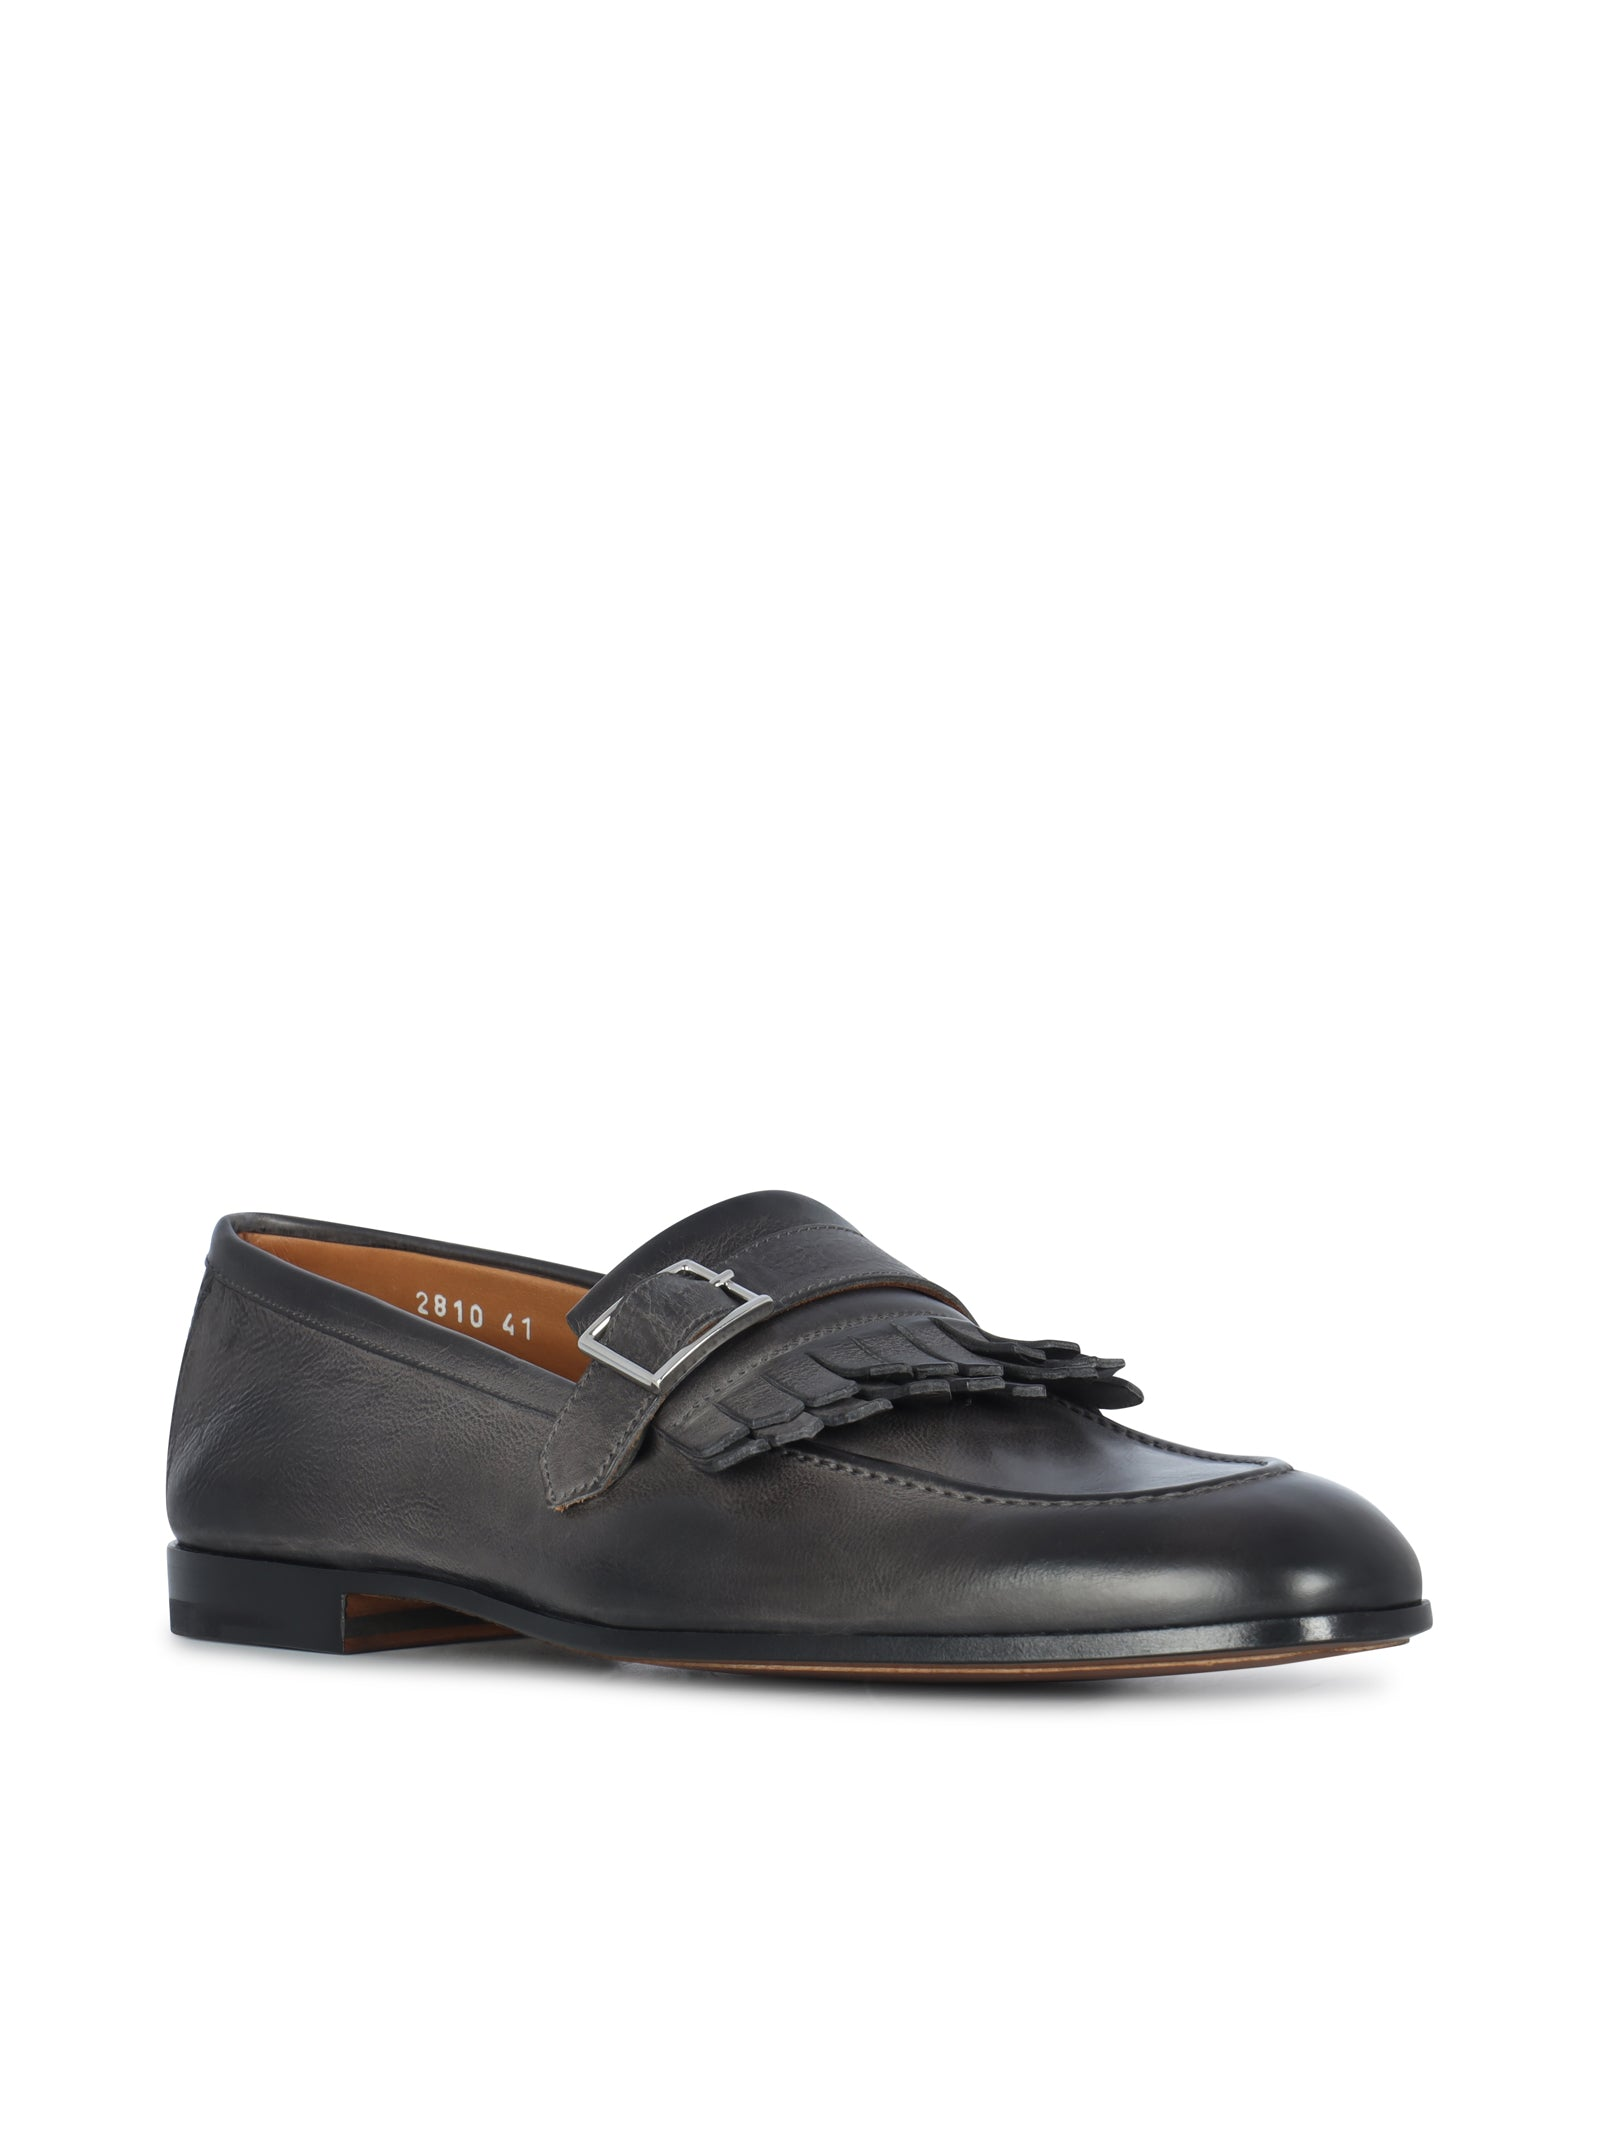 leather loafers with fringes